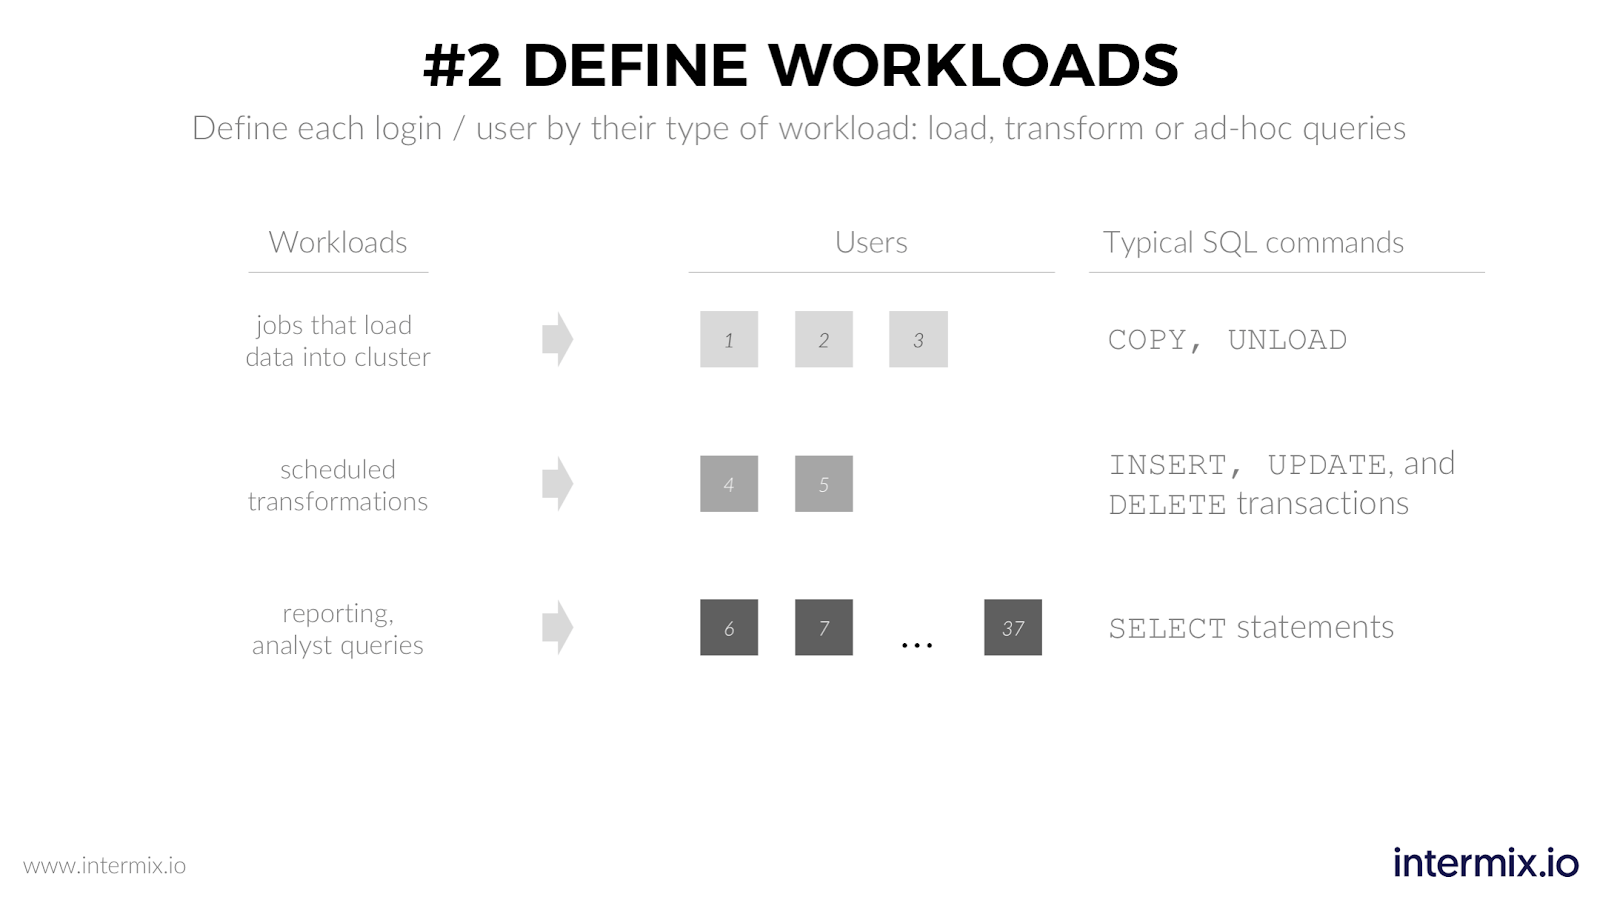 Define workload types